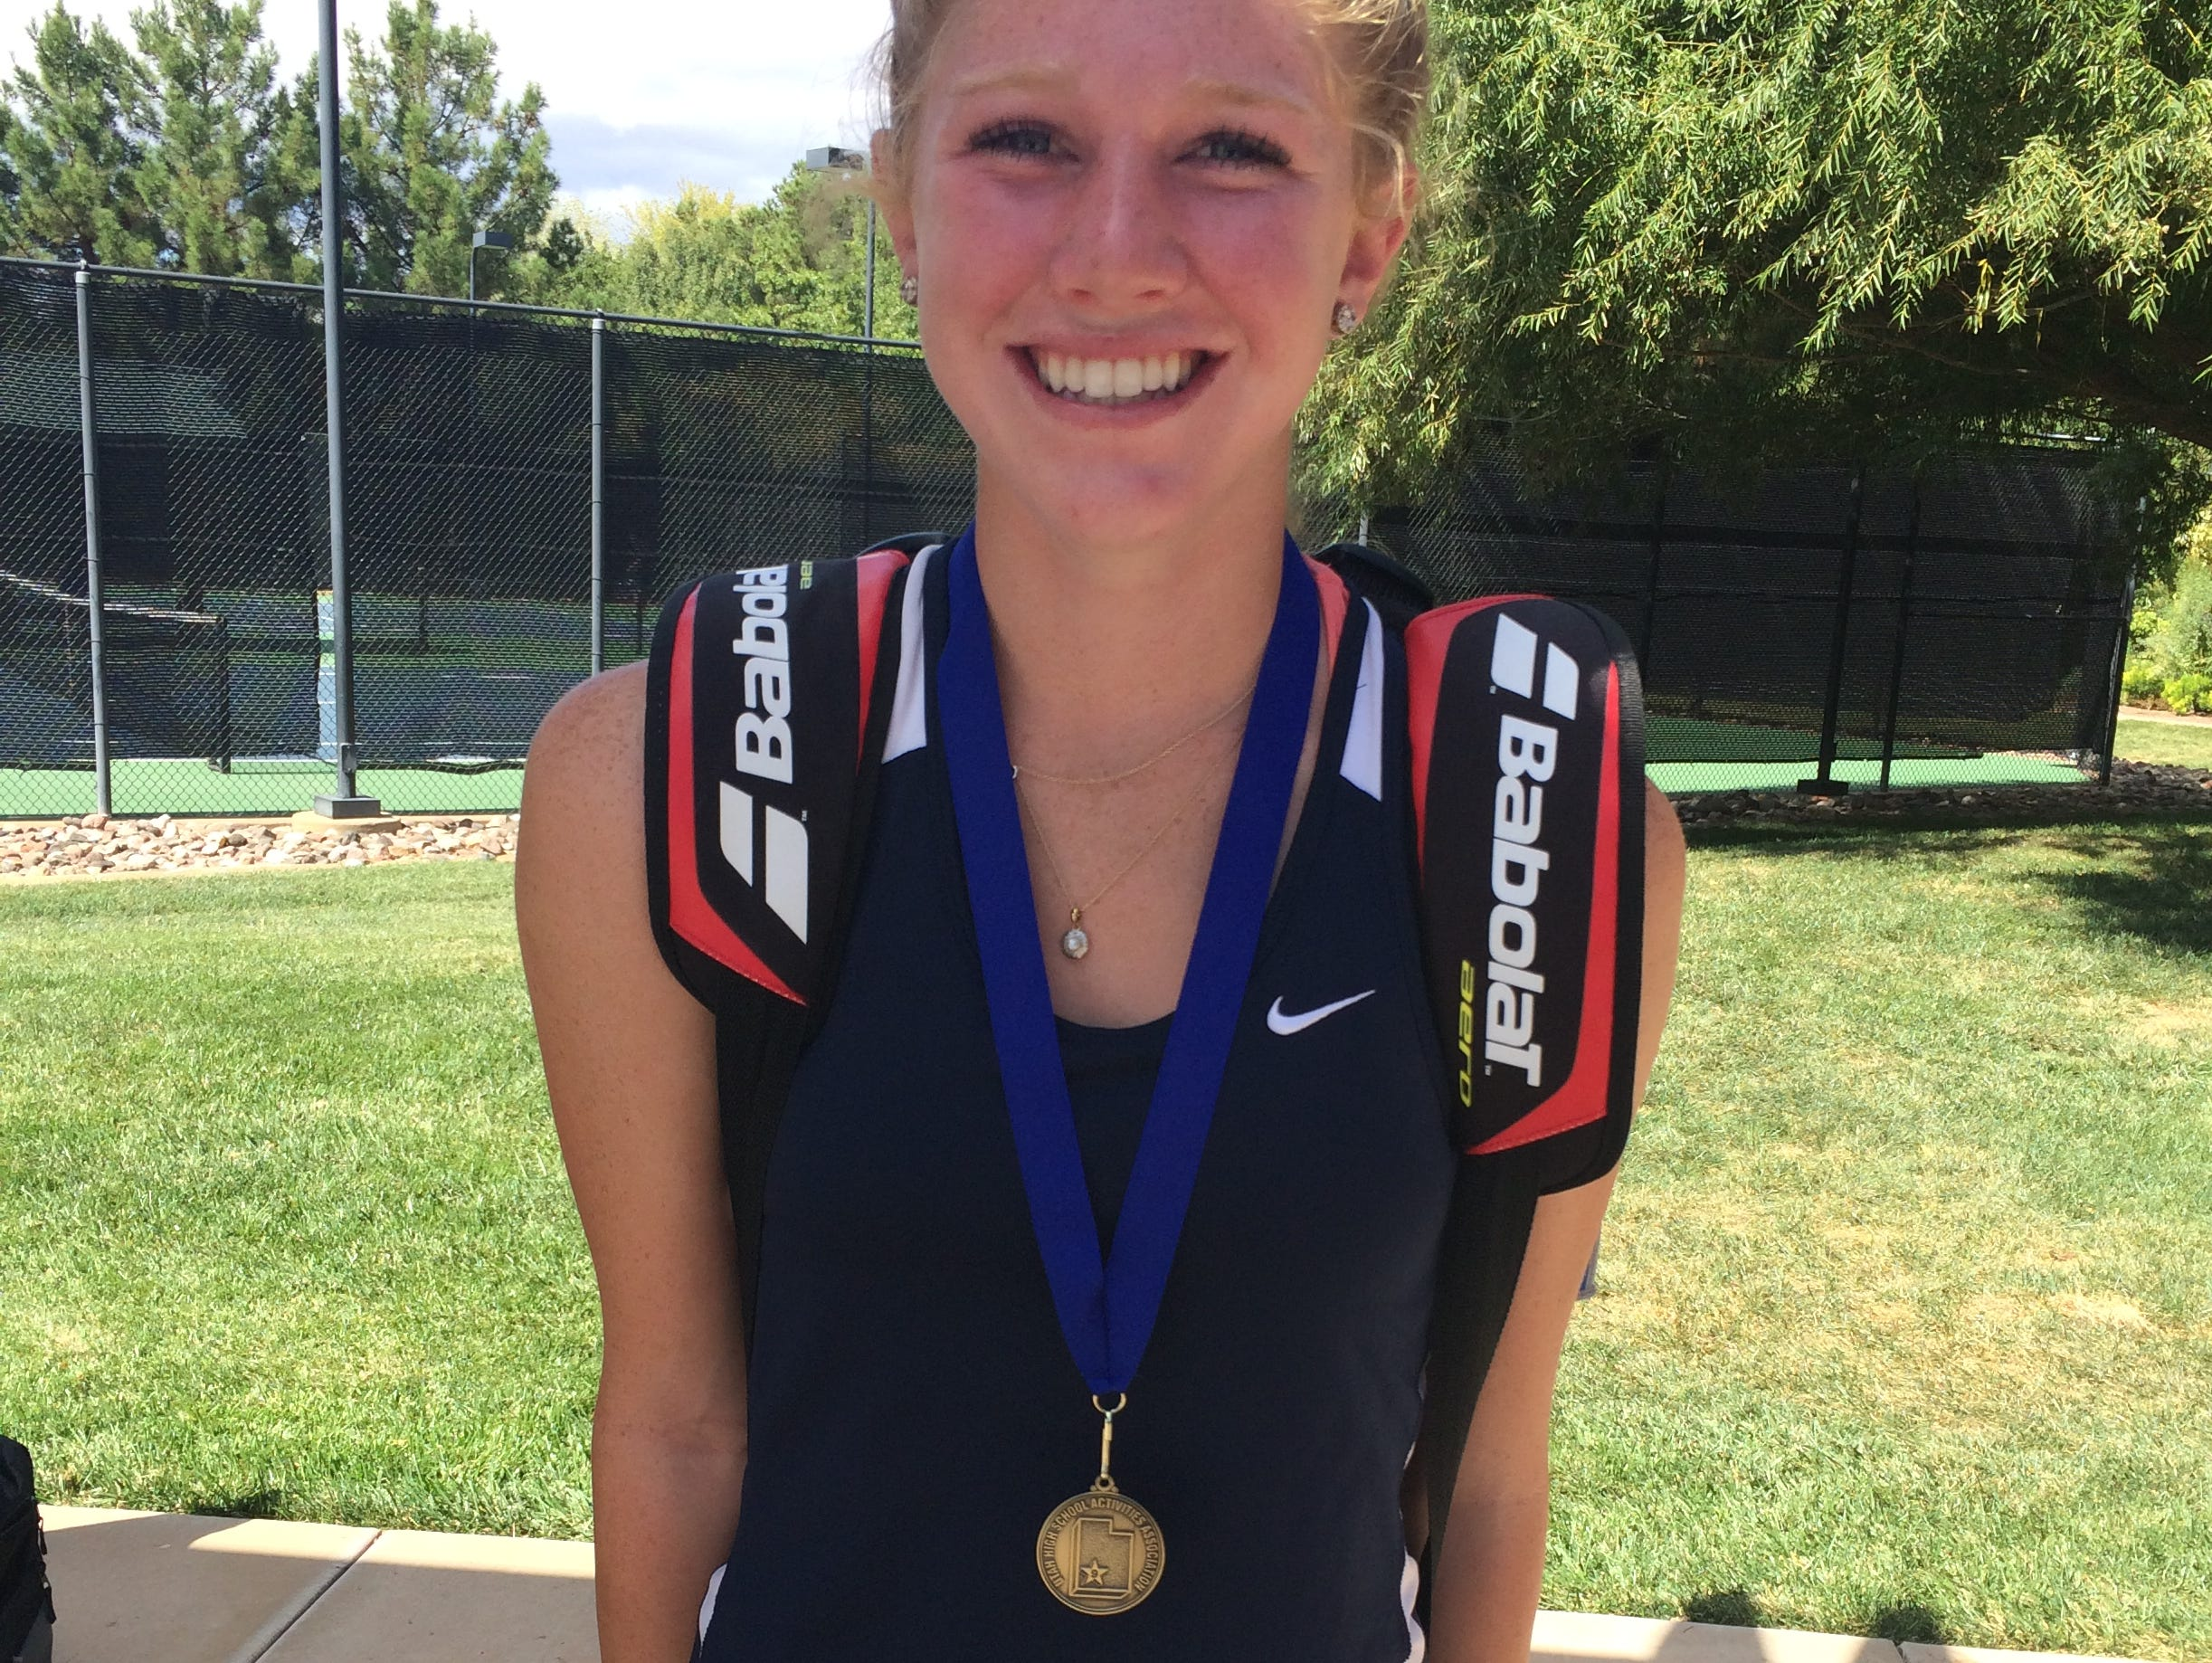 Snow Canyon's Brielle Neilsen took home the top honors in second singles after defeating Lily Hemenway 6-2, 6-2 on Saturday.